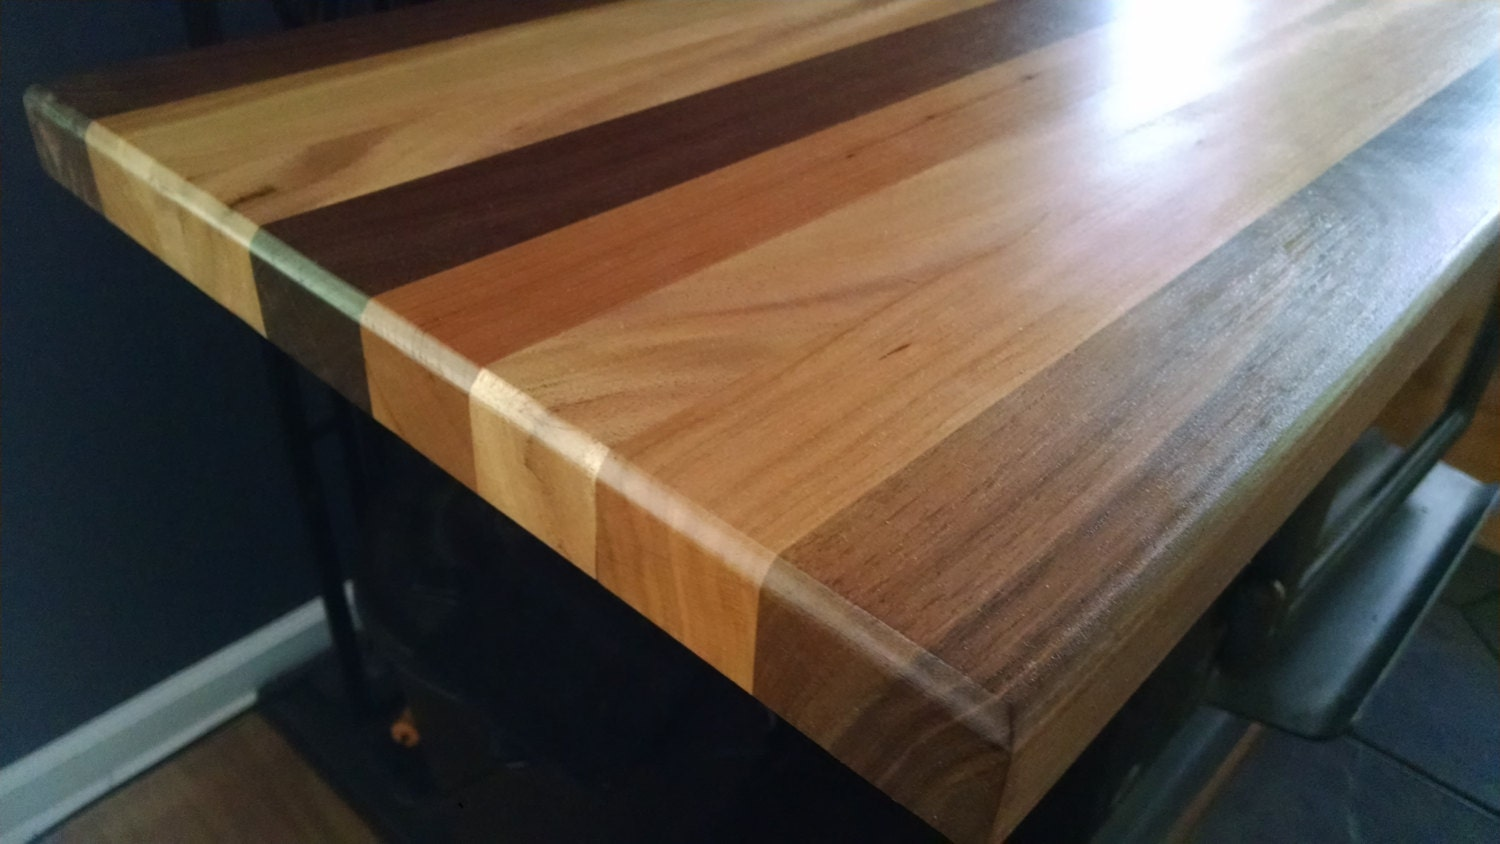 Wonderful Rustic Table Tops Made From Mahogany, Walnut, And Cherry Wood (Coffee Table,  Bar Top, Countertop)